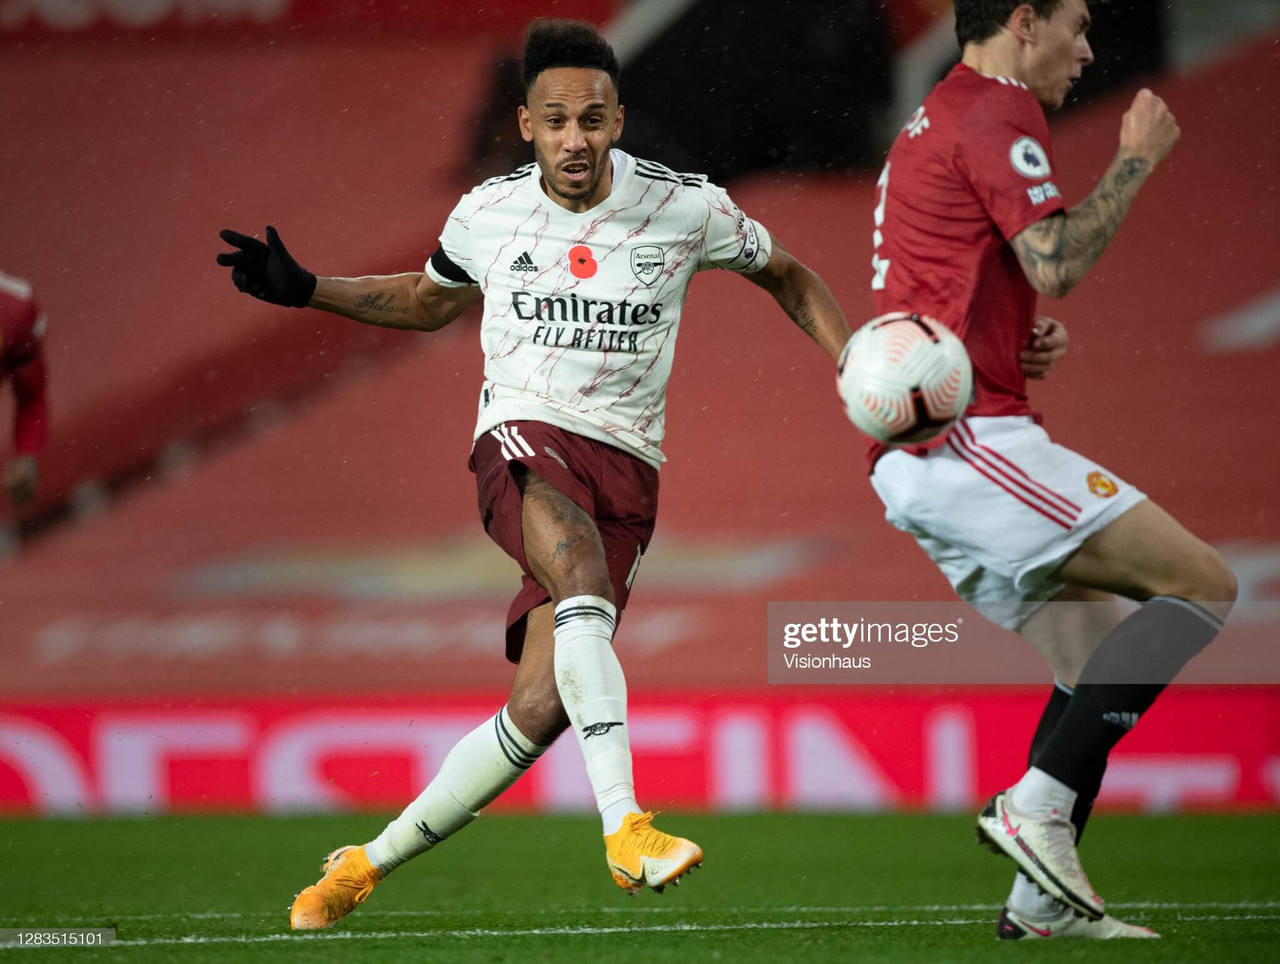 As it happened: Arsenal 0-0 Manchester United in the Premier League